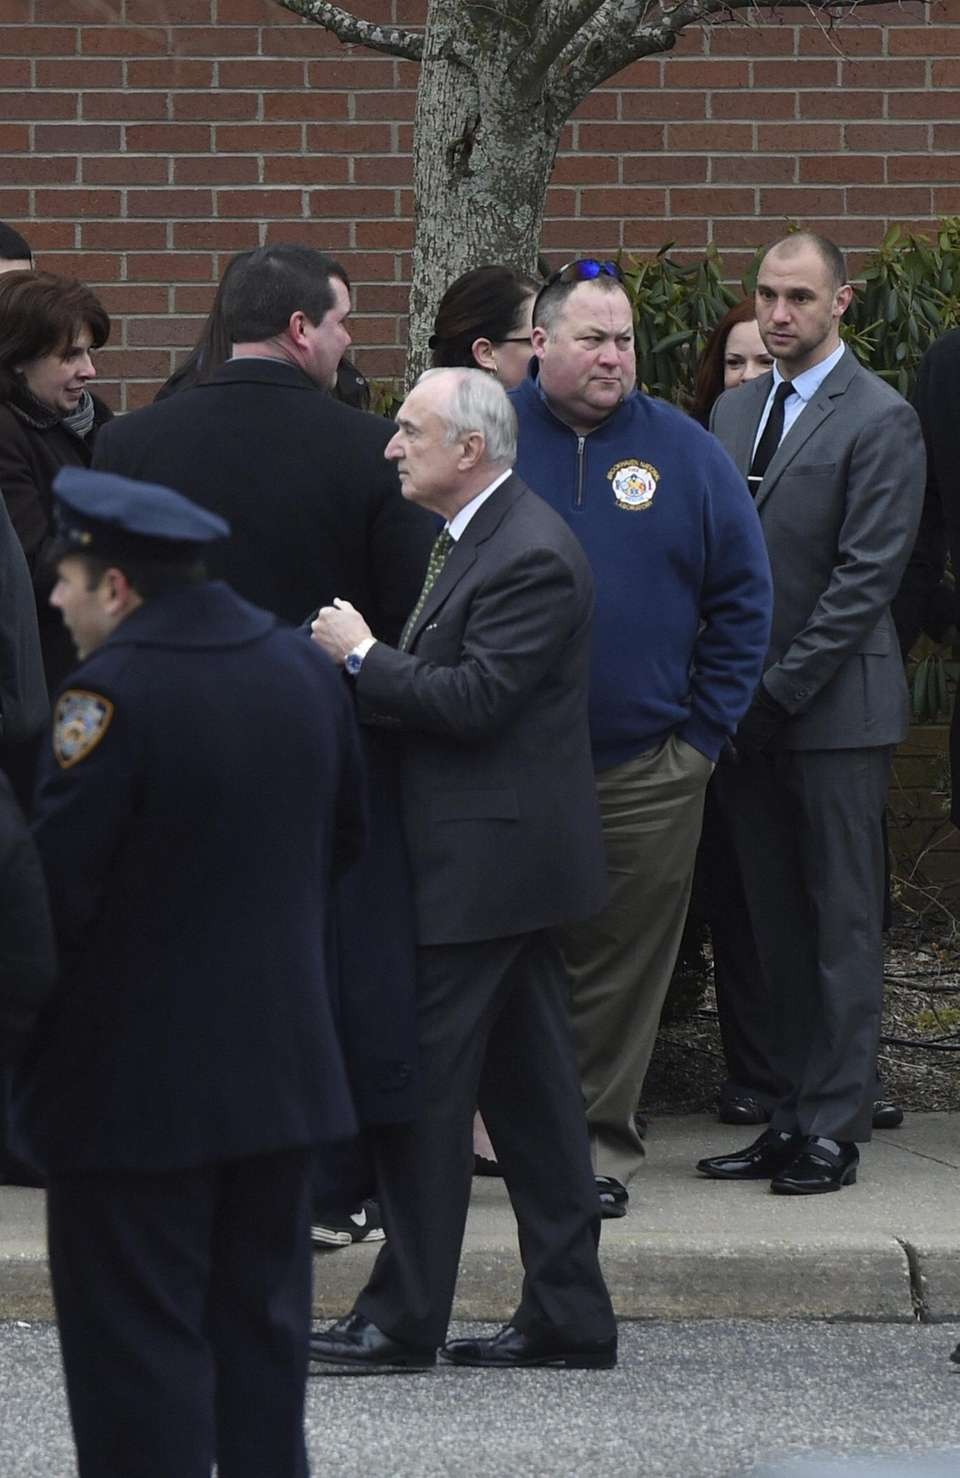 Former NYC police commissioner William Bratton arrives at